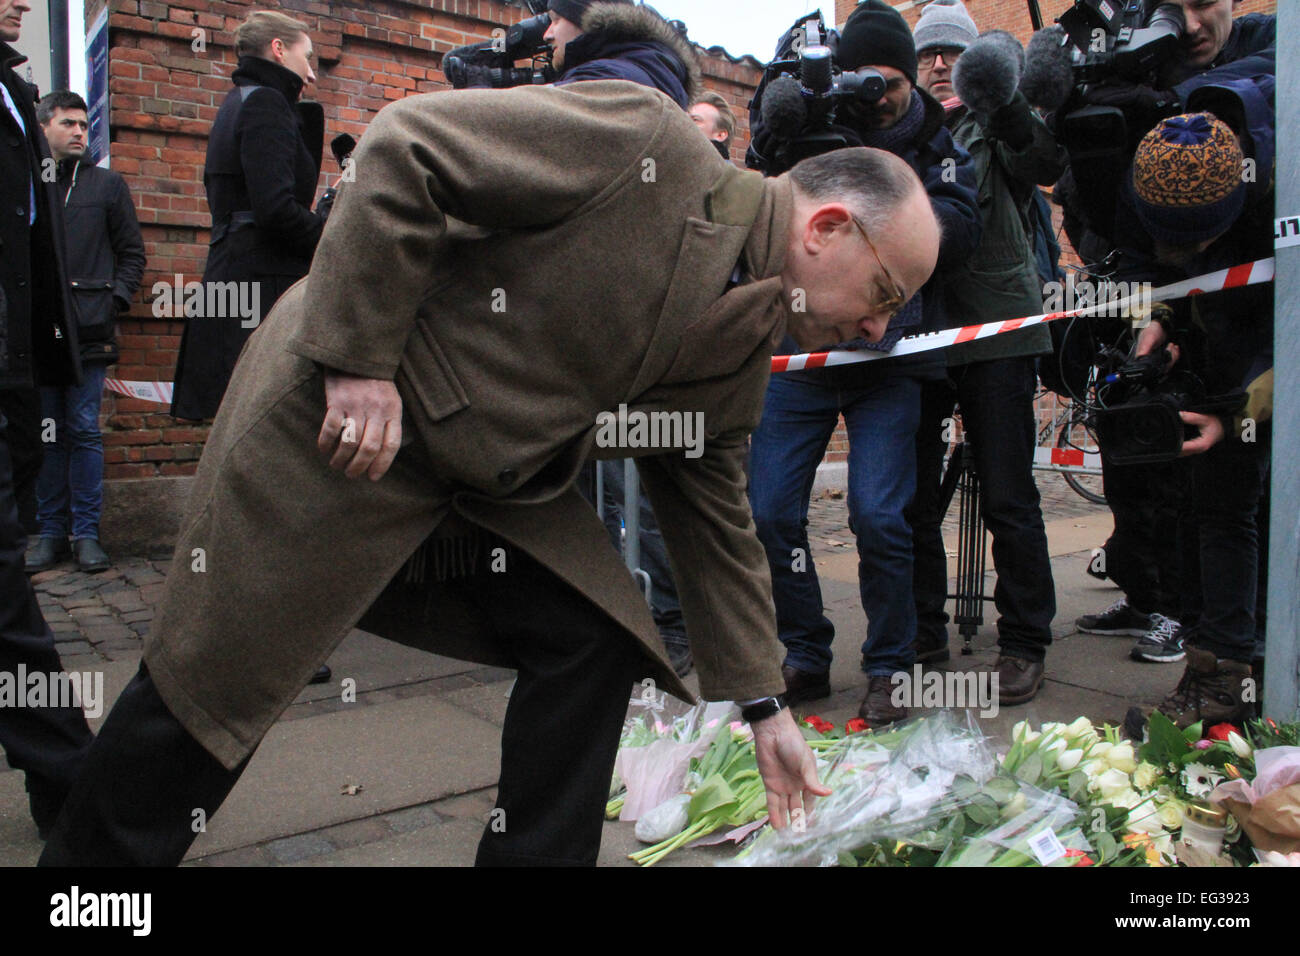 Denmark, Copenhagen. 15th Feb, 2015. French Interior Minister Bernard Cazeneuve lays flowers in front of at the - Stock Image